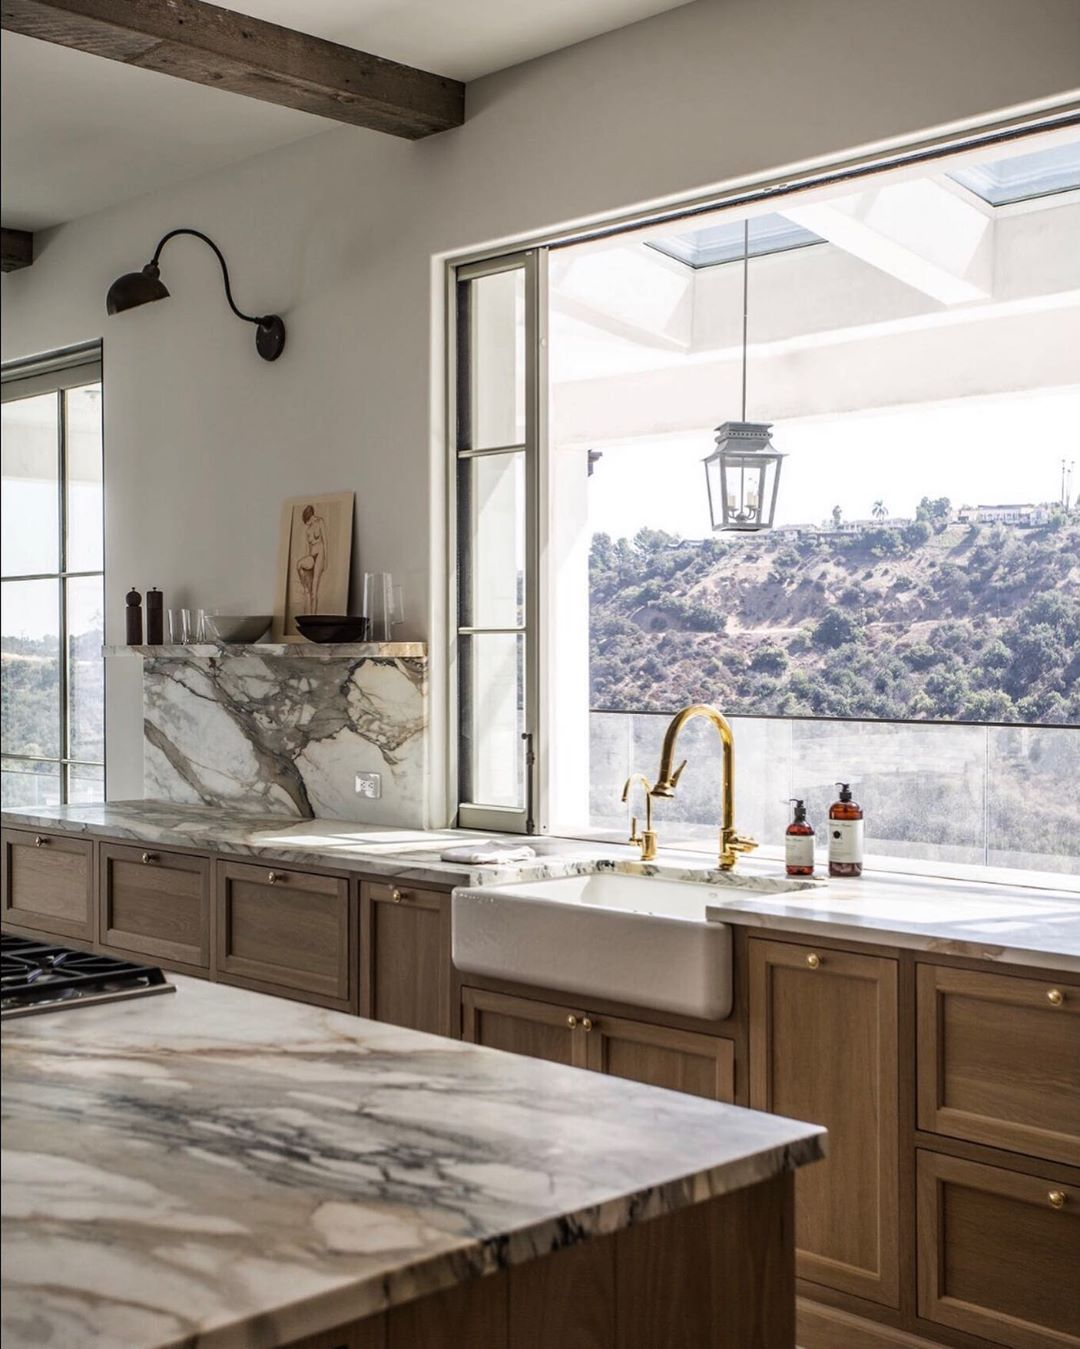 Jake Arnold On Instagram Considering The Outside When Designing The Inside Is Part Of My Design Proc Interior Design Kitchen Kitchen Interior Home Remodeling